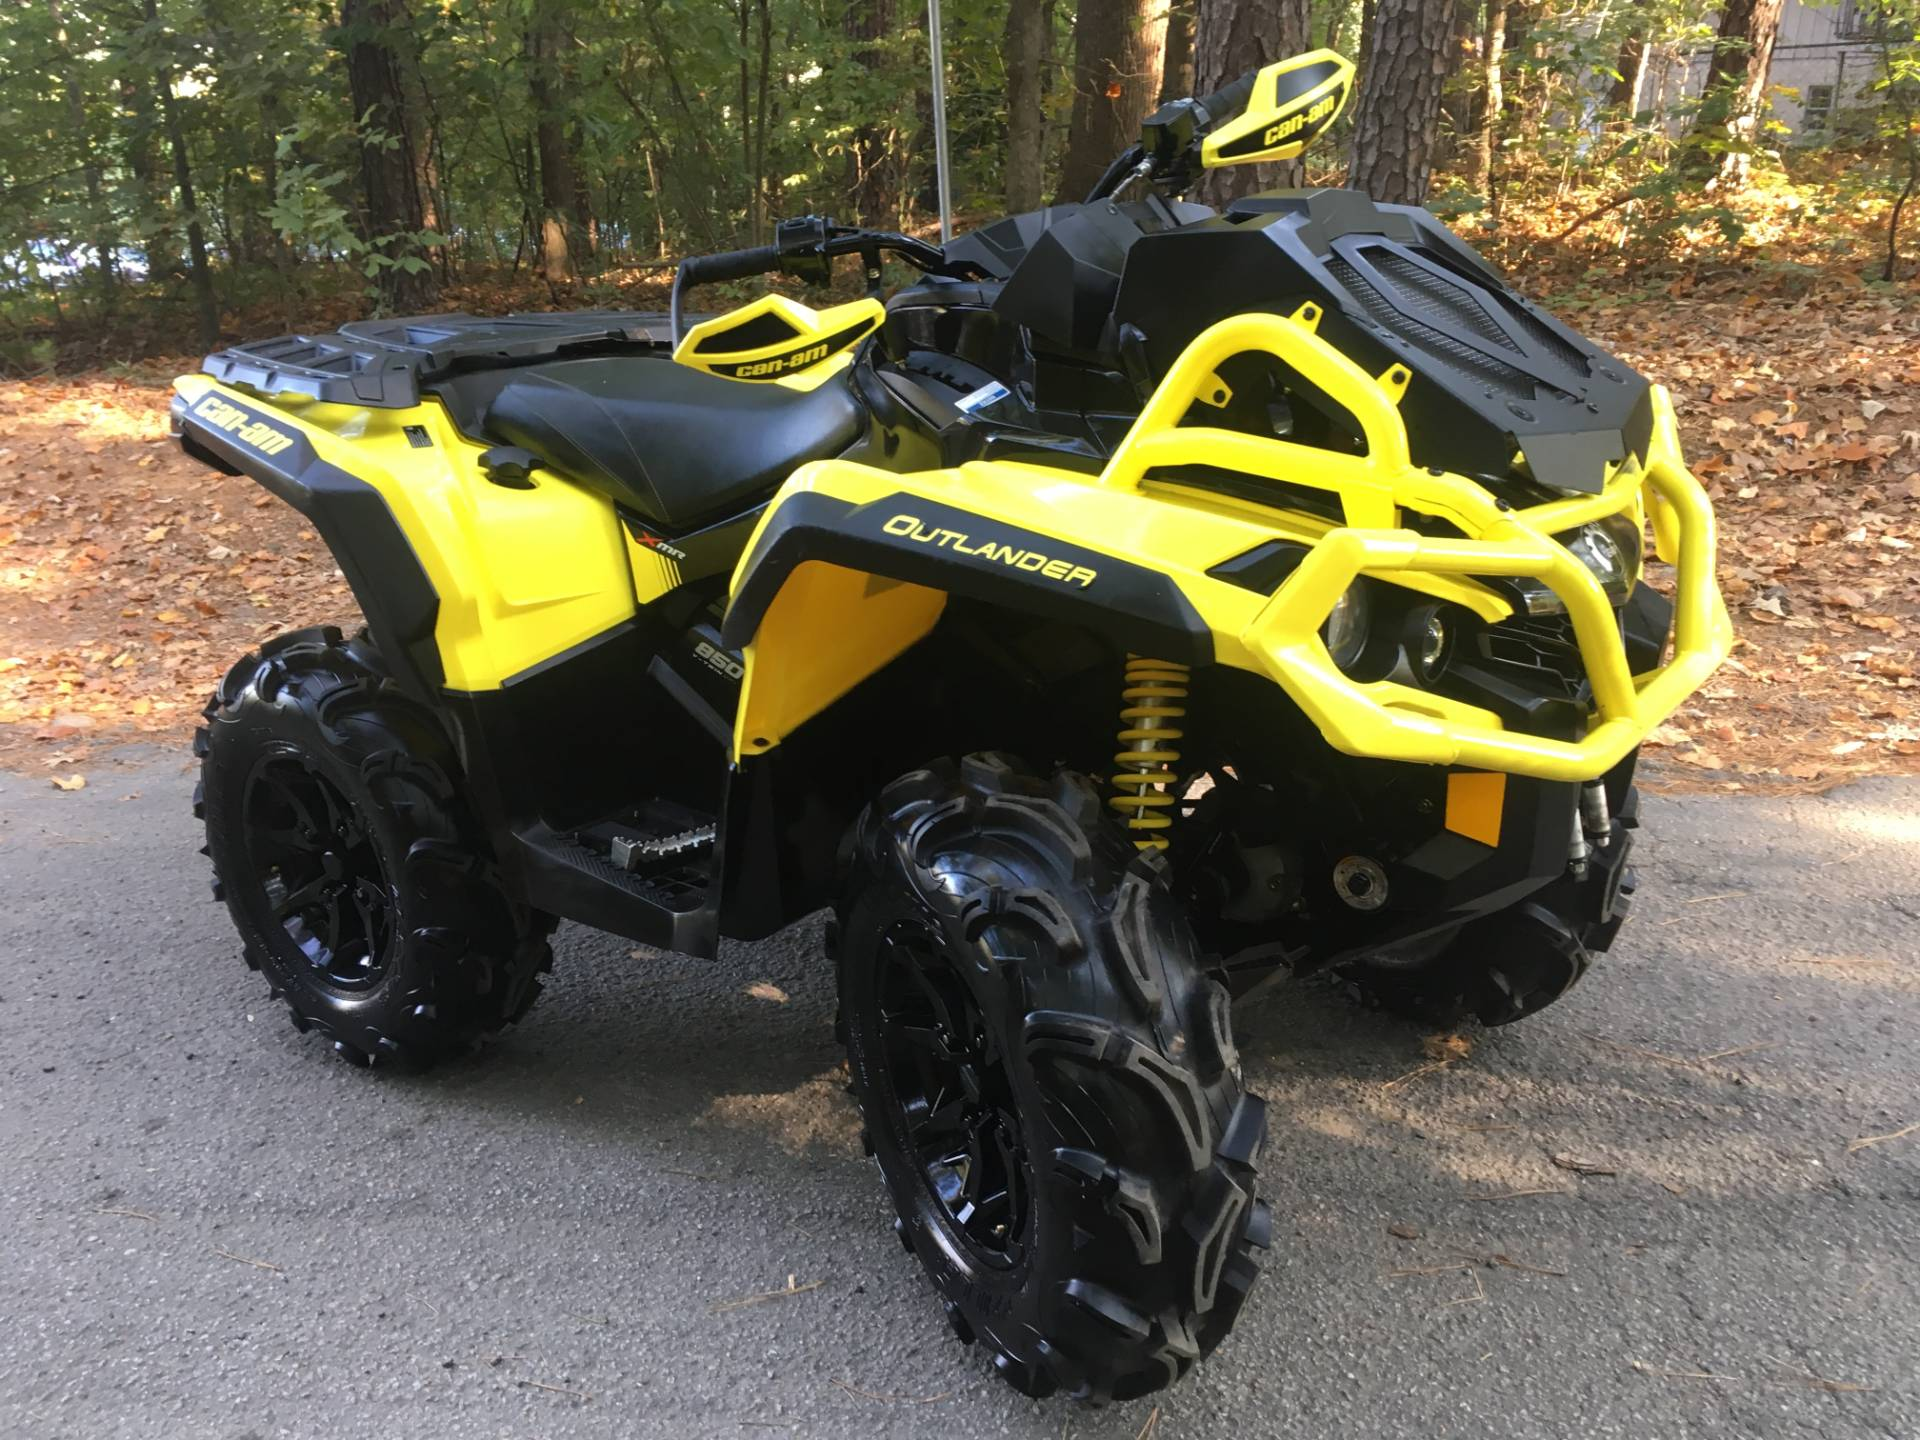 2019 CAN-AM OUTLANDER XT-P 850 in Woodstock, Georgia - Photo 5